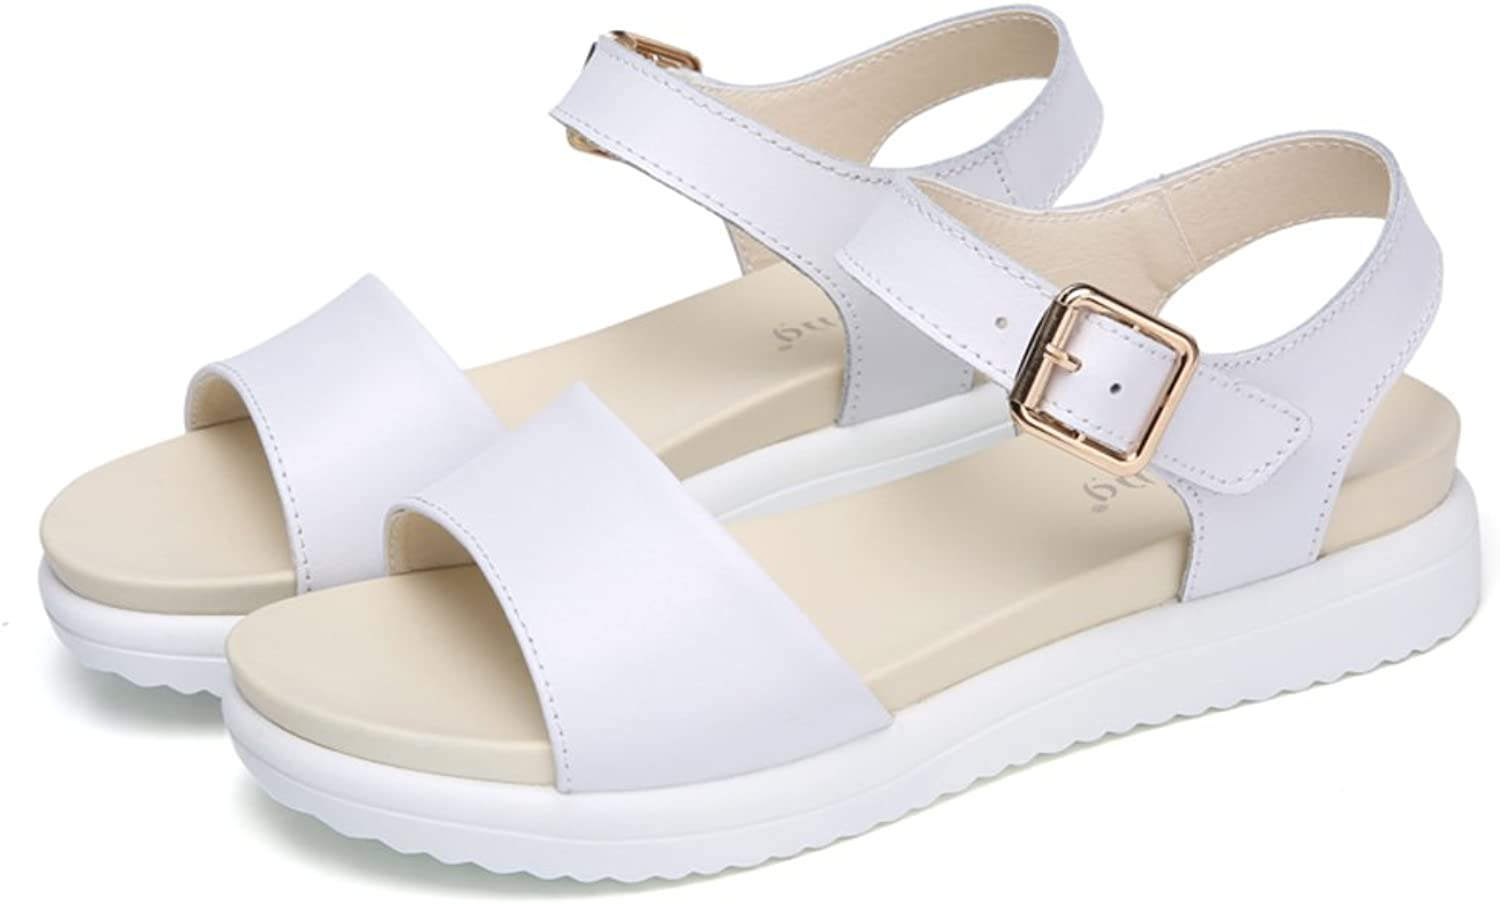 MET RXL Summer,Flat,Casual shoes Lady,Flat Sandals